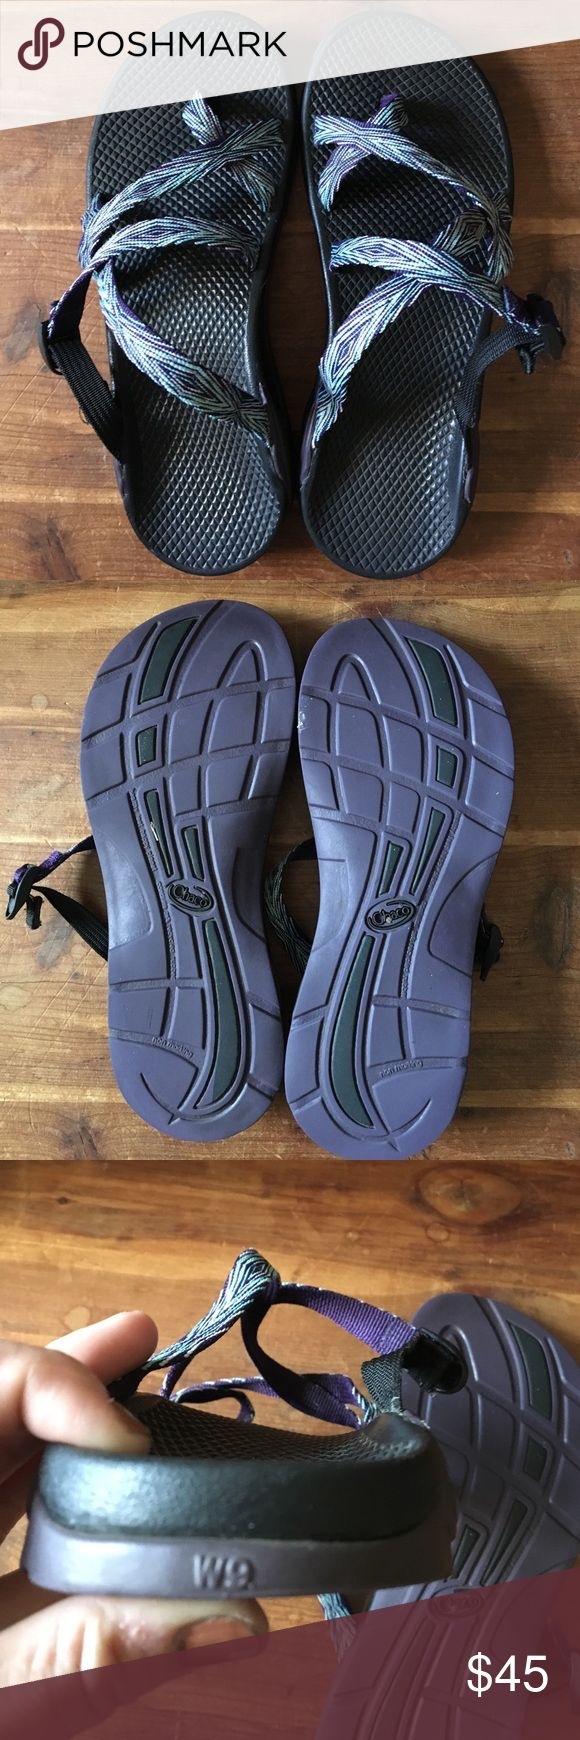 Women's Chacos sandals. Size 9 Women's Chaco sandals. Size 9. Slip ons with no back. Black footbed with purple sole. Worn only a handful of times. Chacos Shoes Sandals